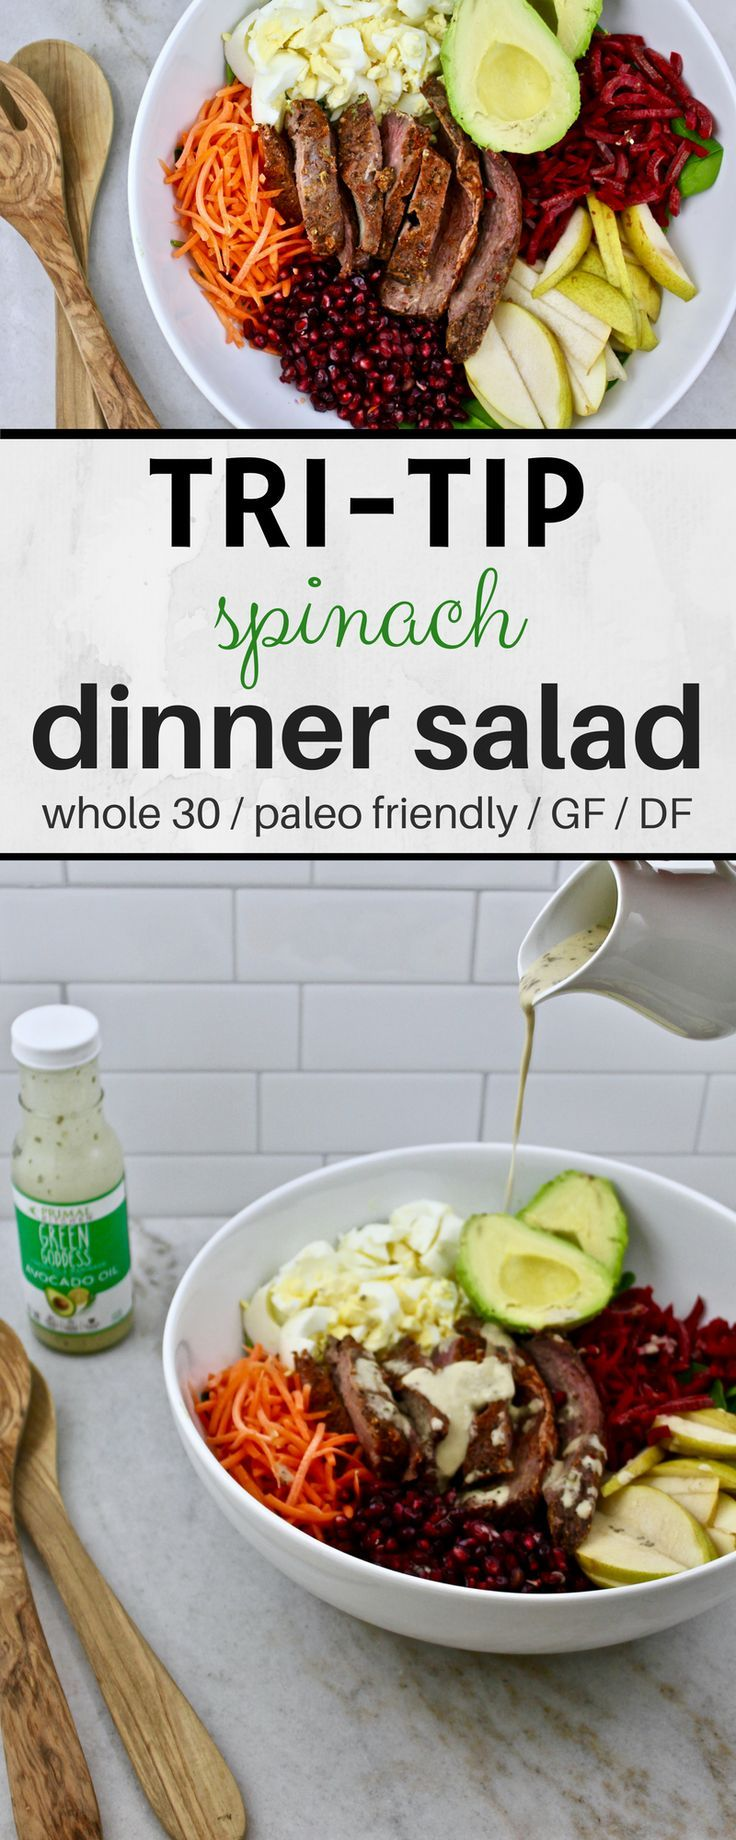 Tri-tip Spinach Salad with Primal Kitchen Green Goddess Dressing – whole 30, paleo, dairy and gluten free – the perfect dinner salad!